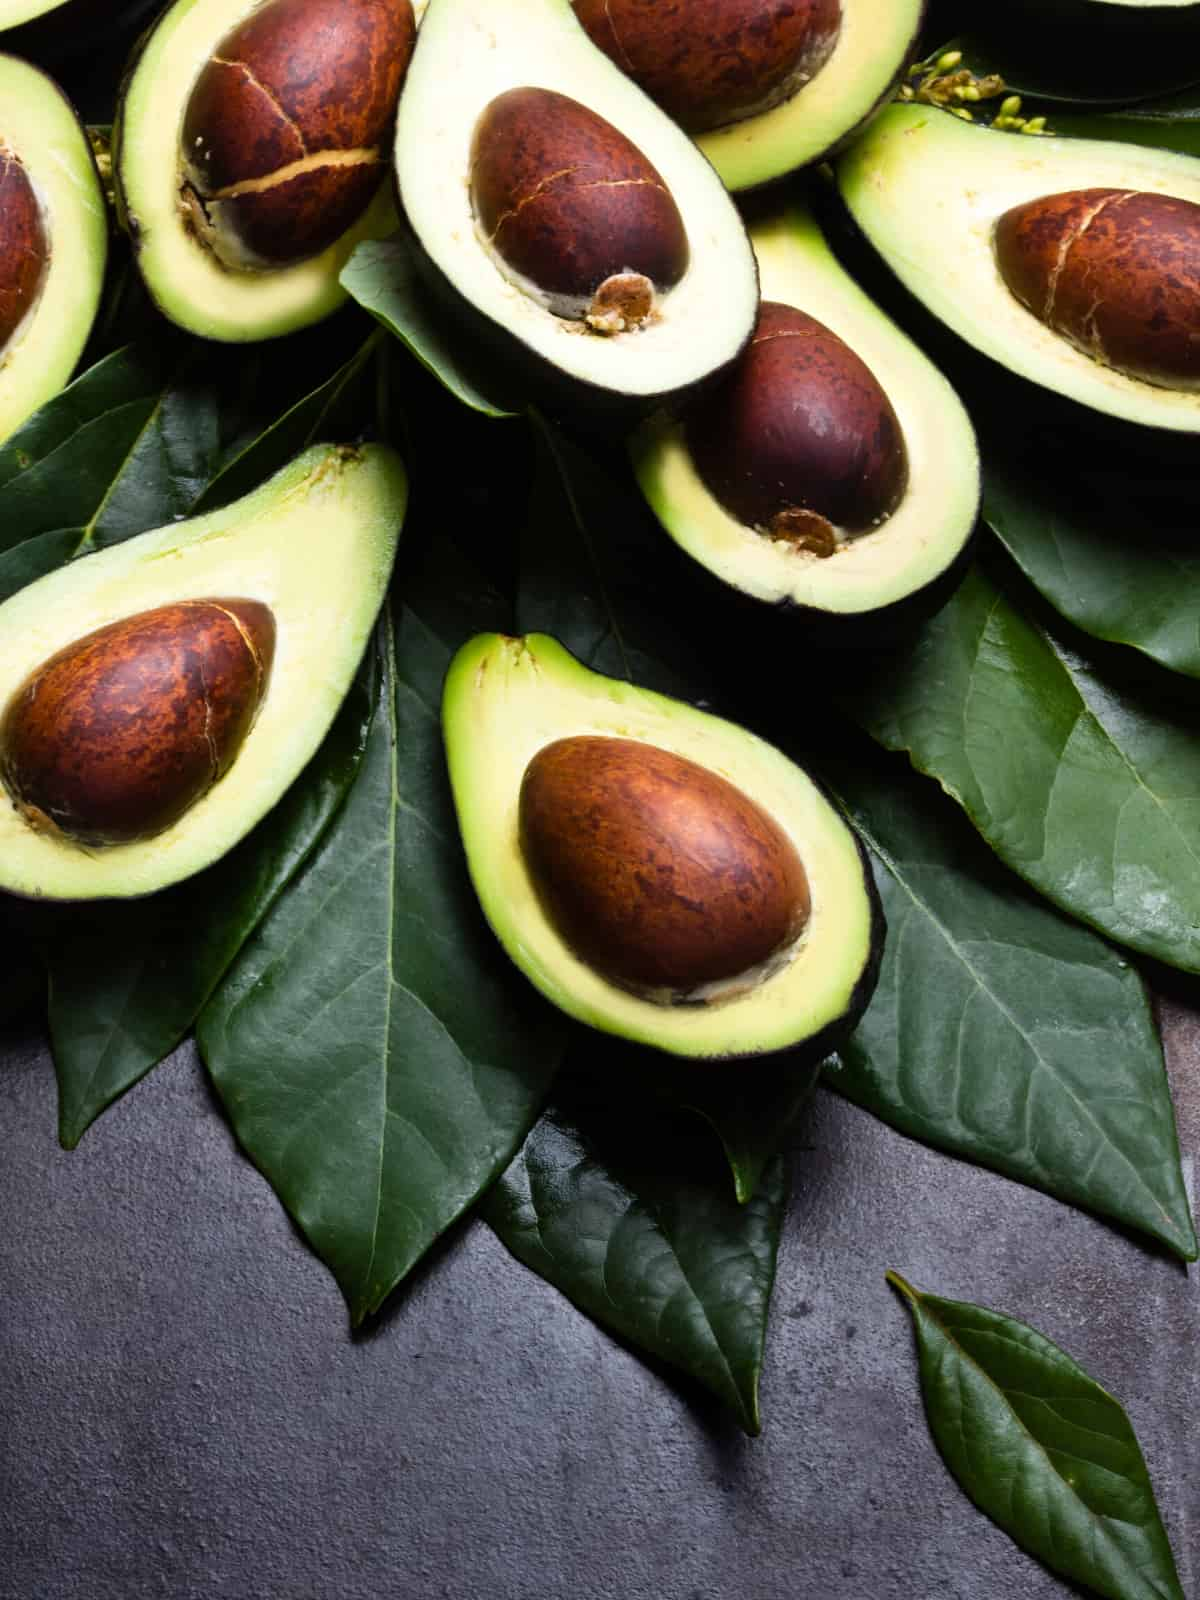 CUT AVOCADOS ON DARK GREY BACKGROUND